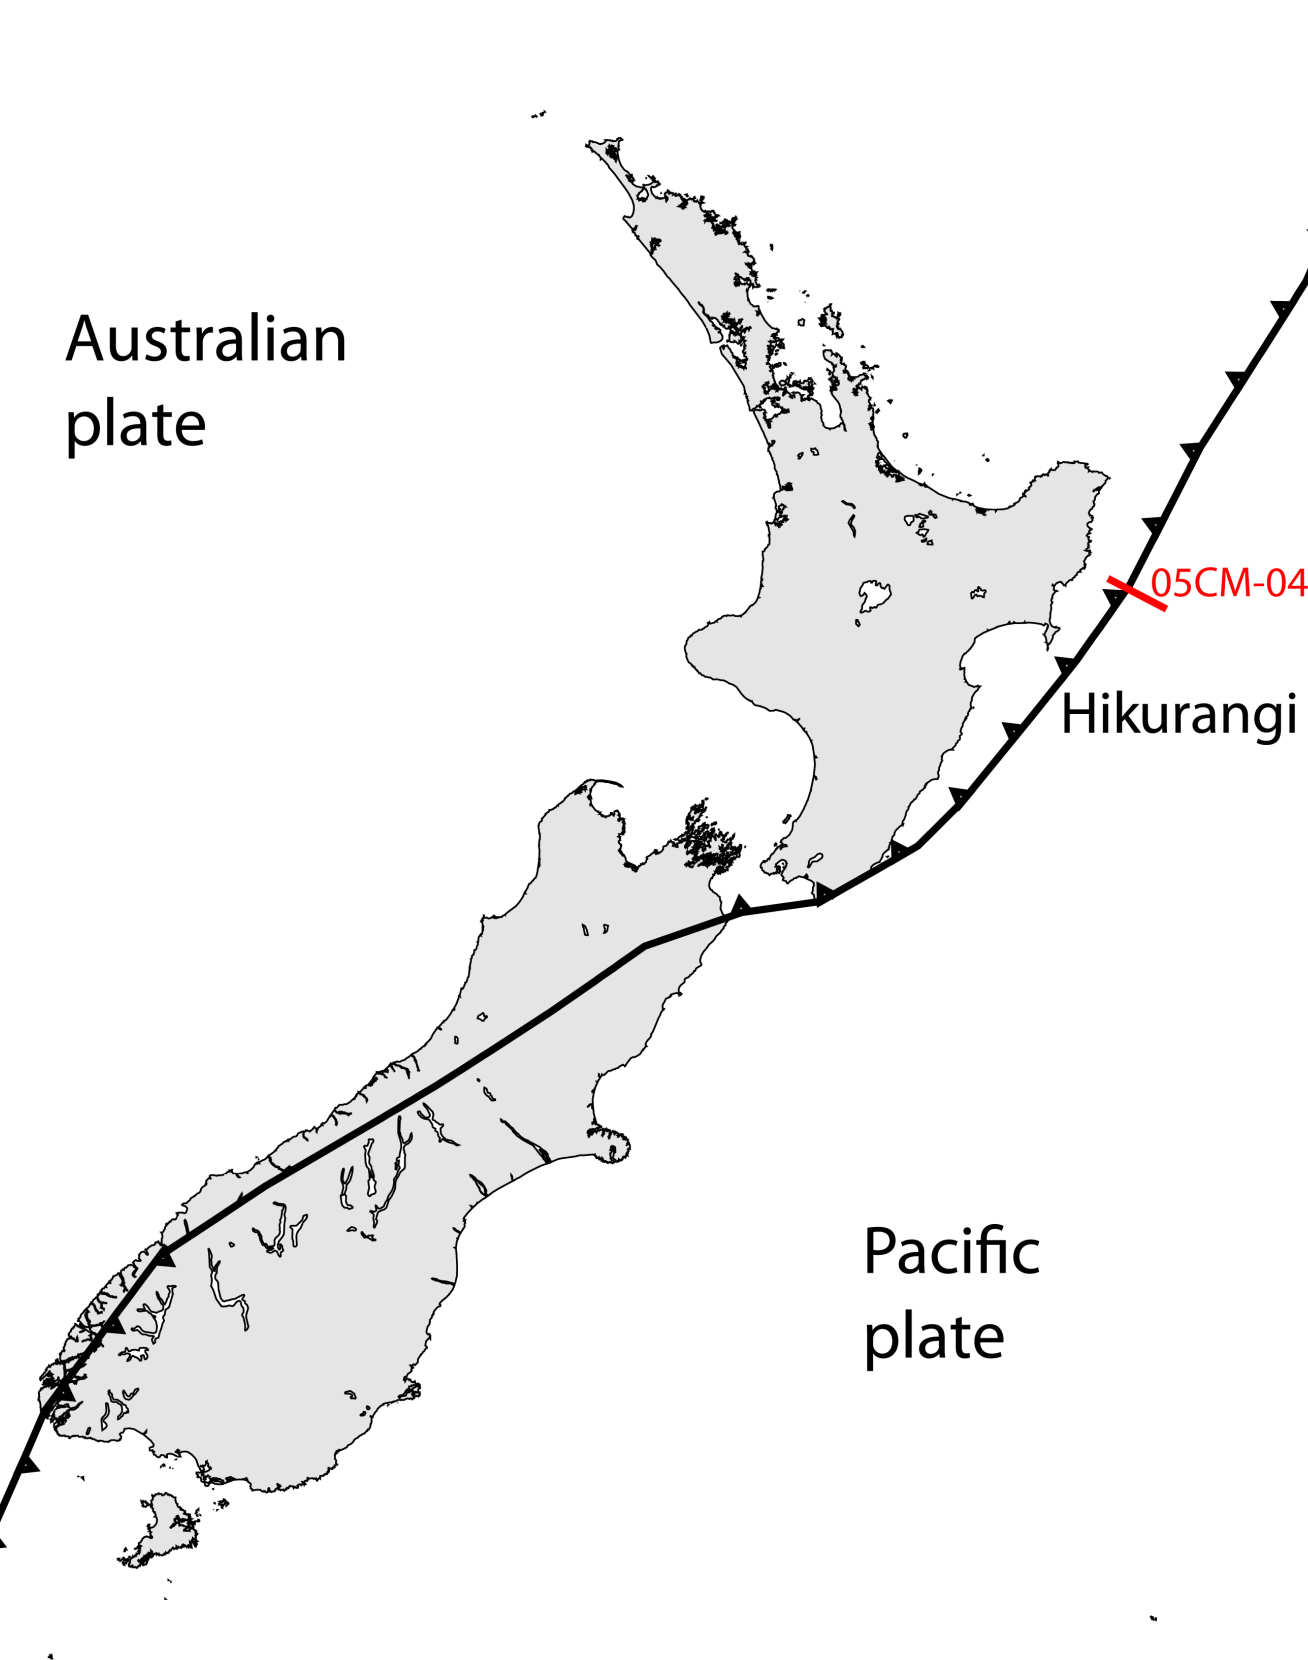 Plate boundary under New Zealand, showing the Hikurangi subduction zone near the north island.